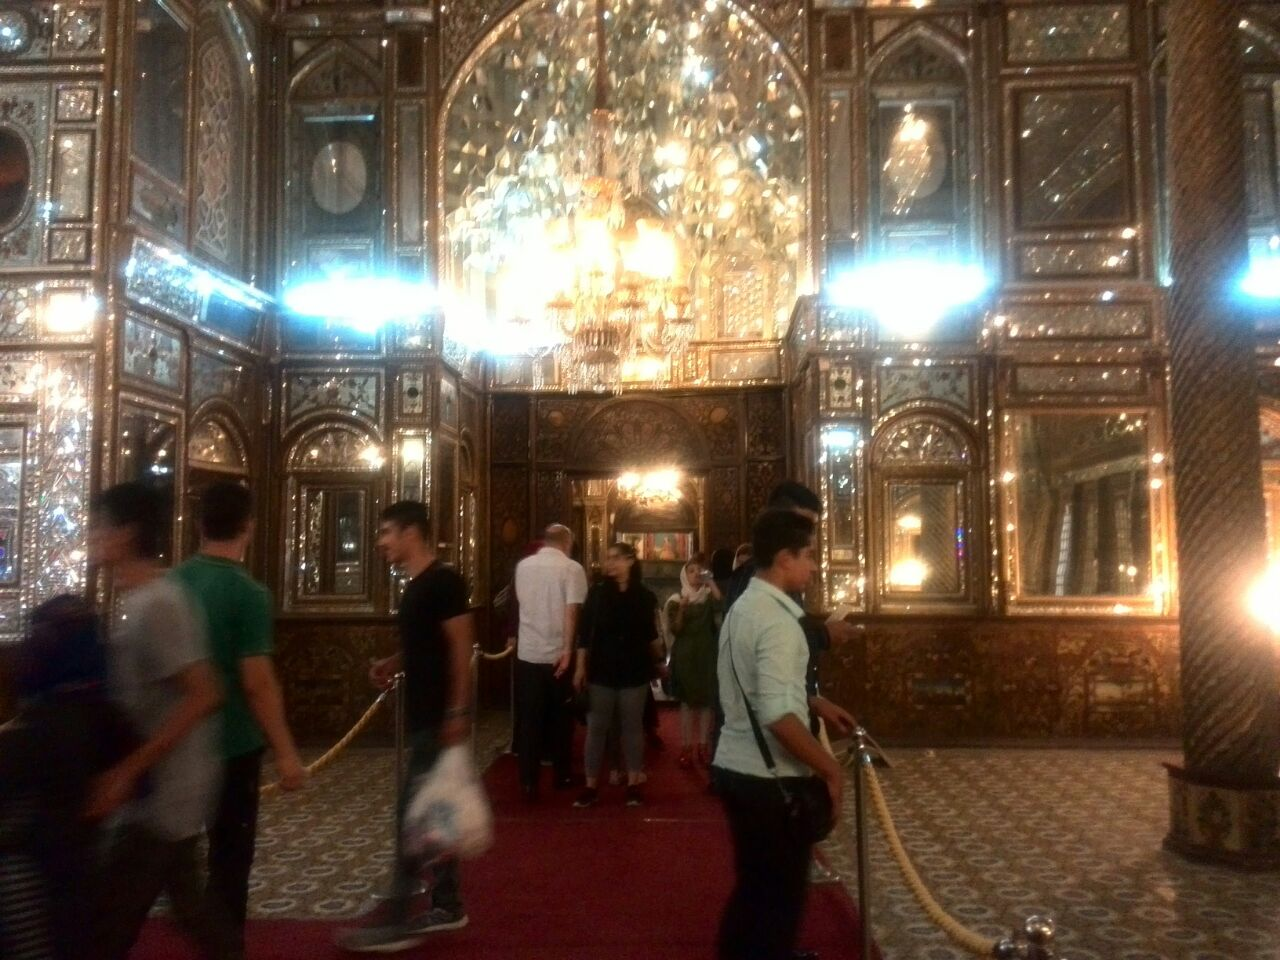 Some children and teenagers under support of Mehrafarin visited Golestan palace as a fun and educational one-day trip